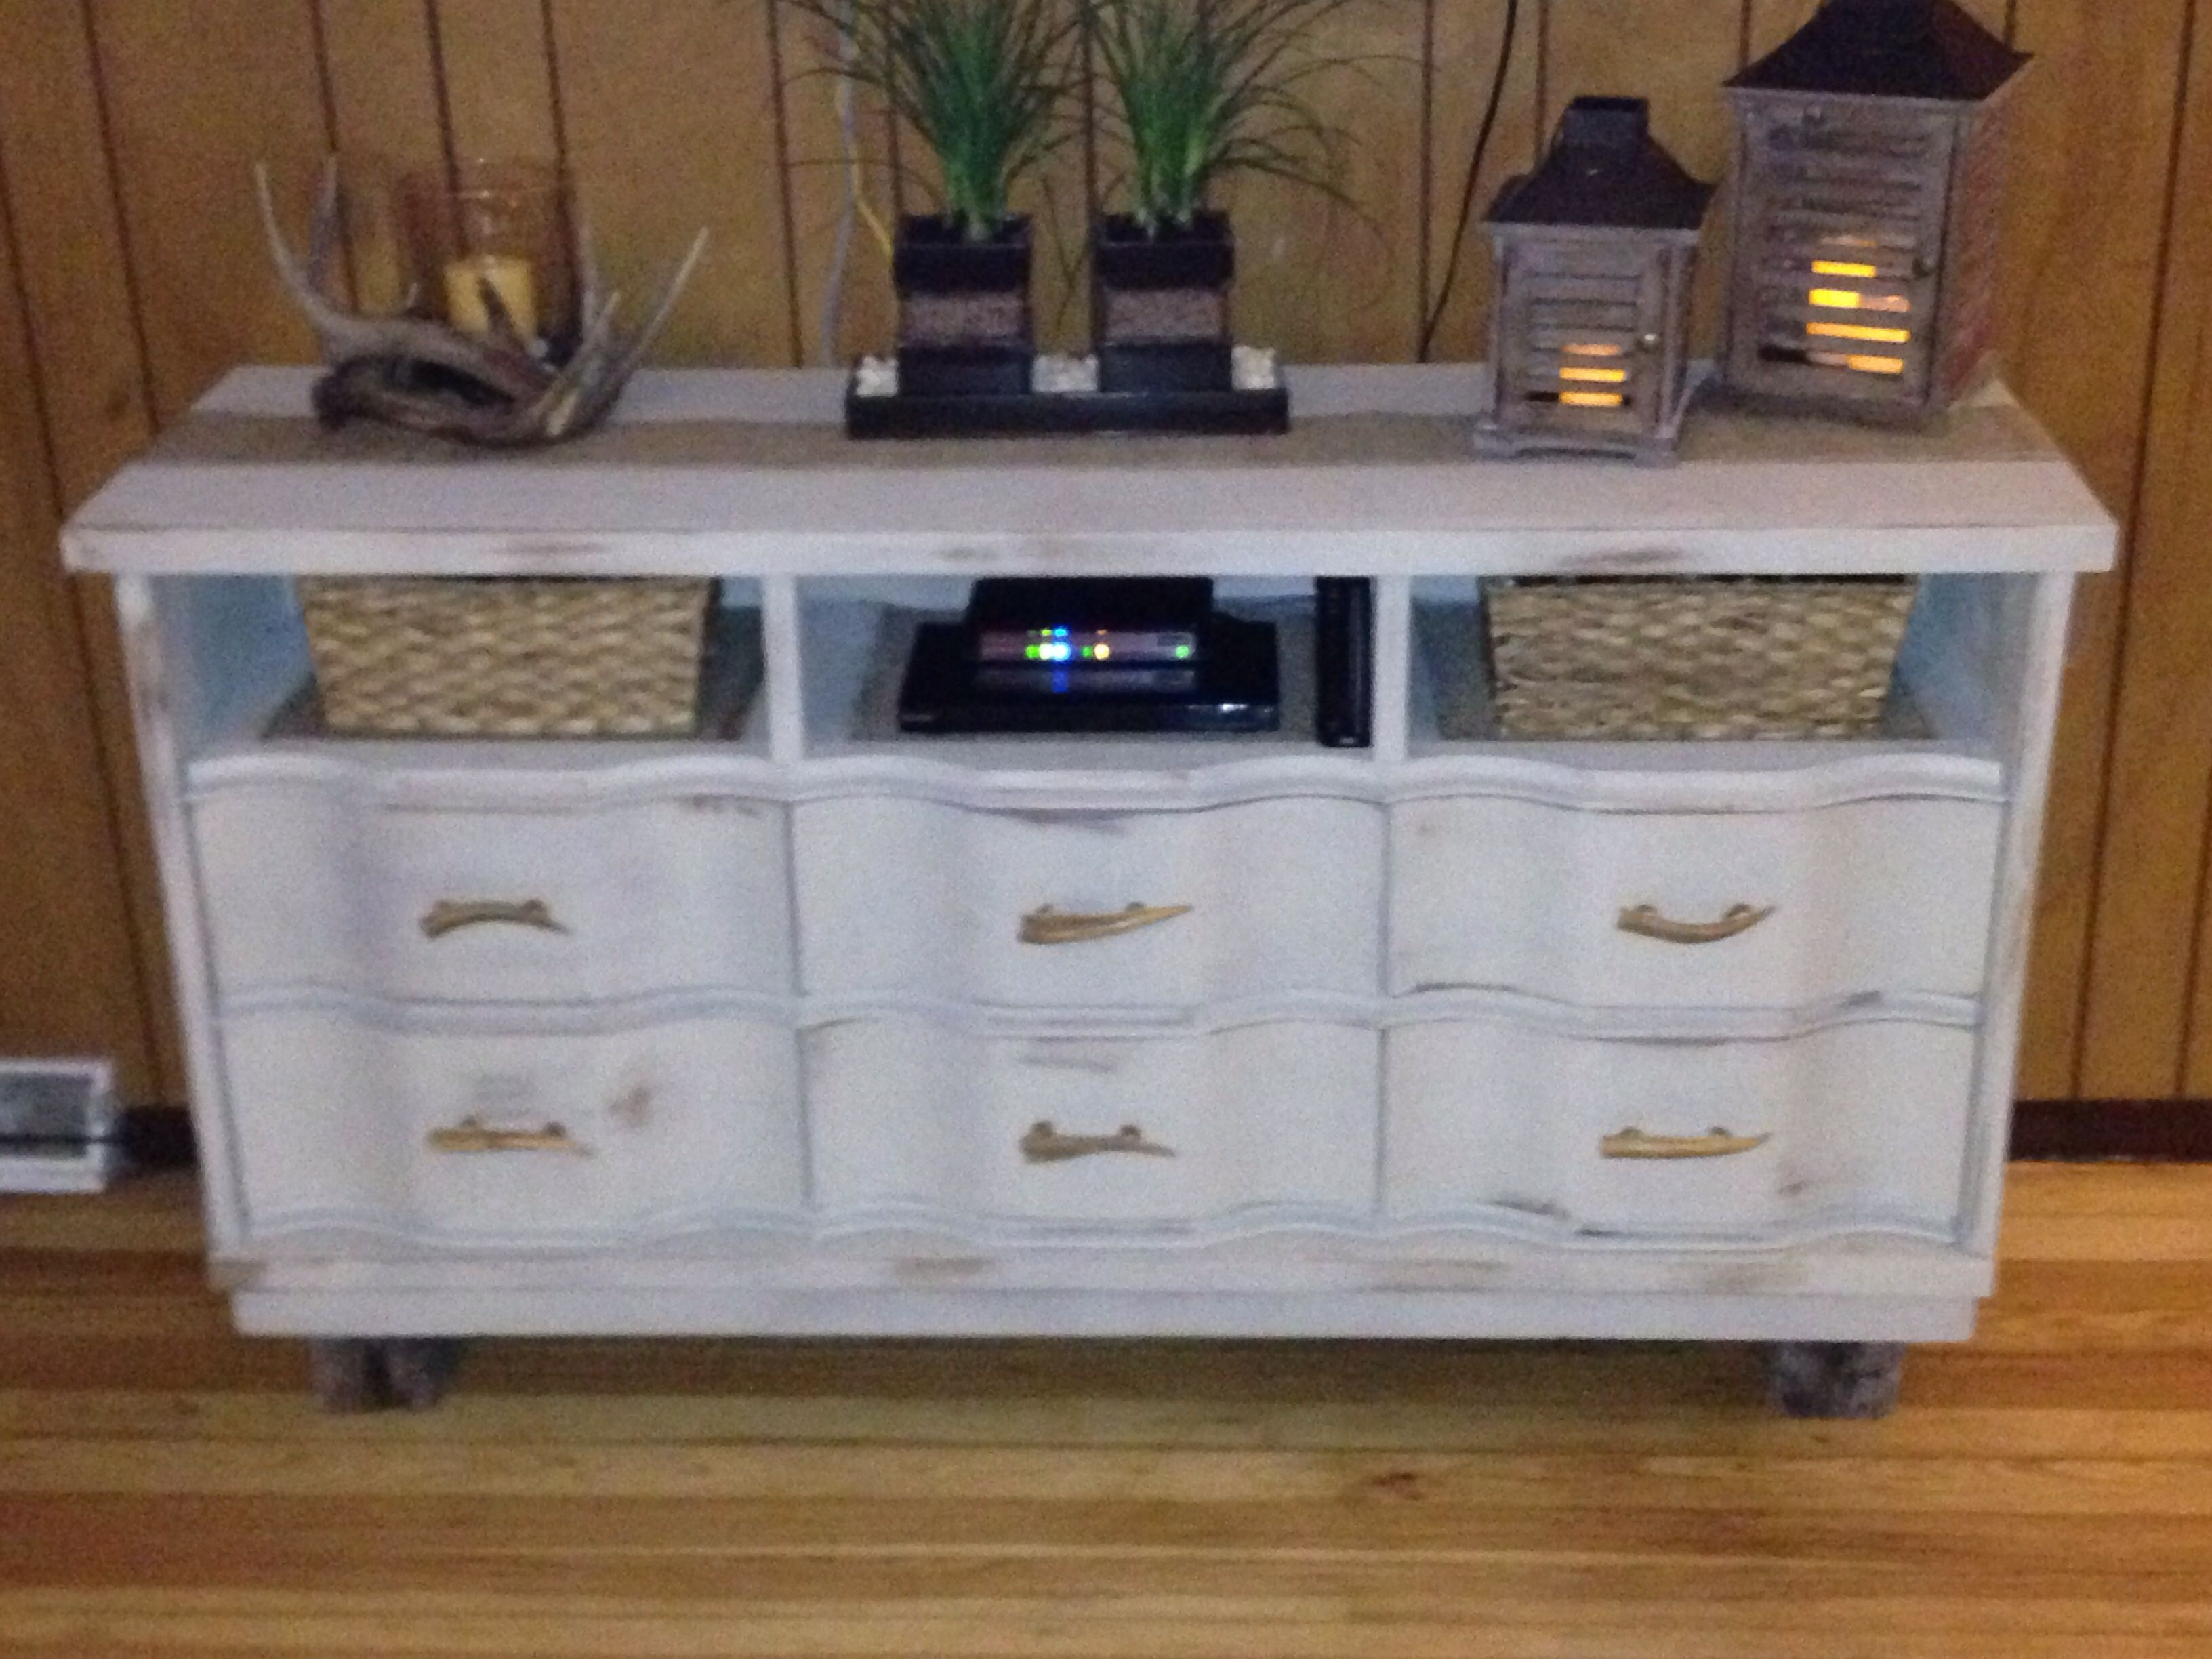 diy old dresser to tv stand makeover painted and distressed and also added reclaim lumber for